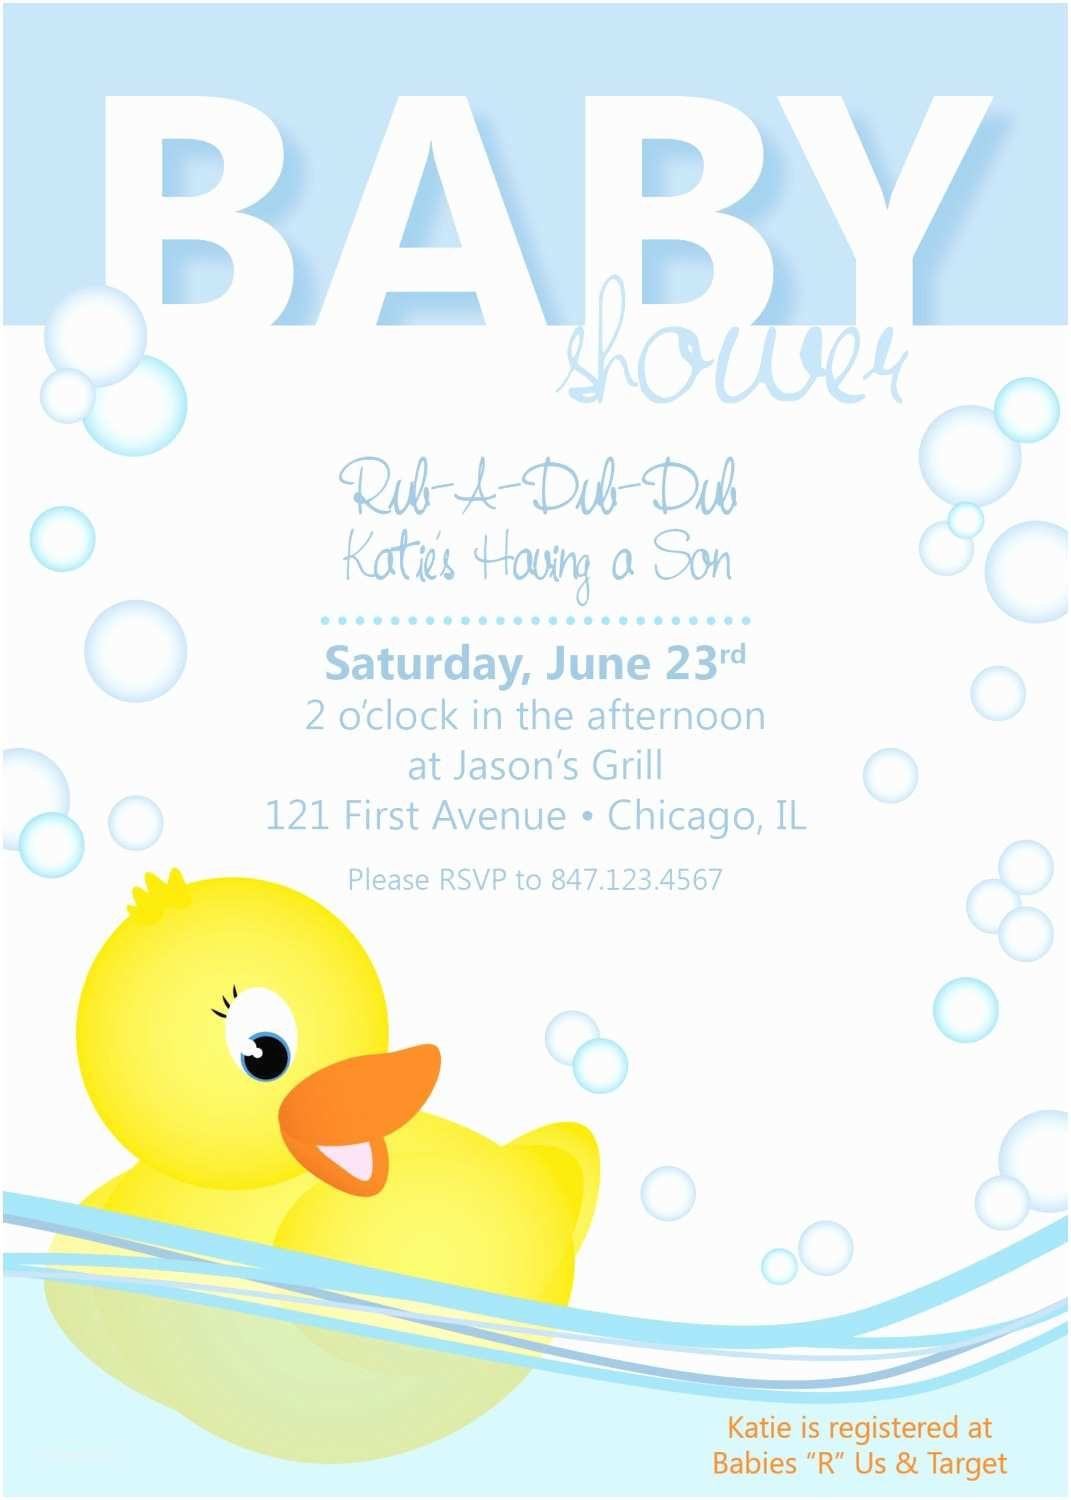 Duck Baby Shower Invitations Baby Shower Invitation Rubber Ducky by Collidestudio On Etsy